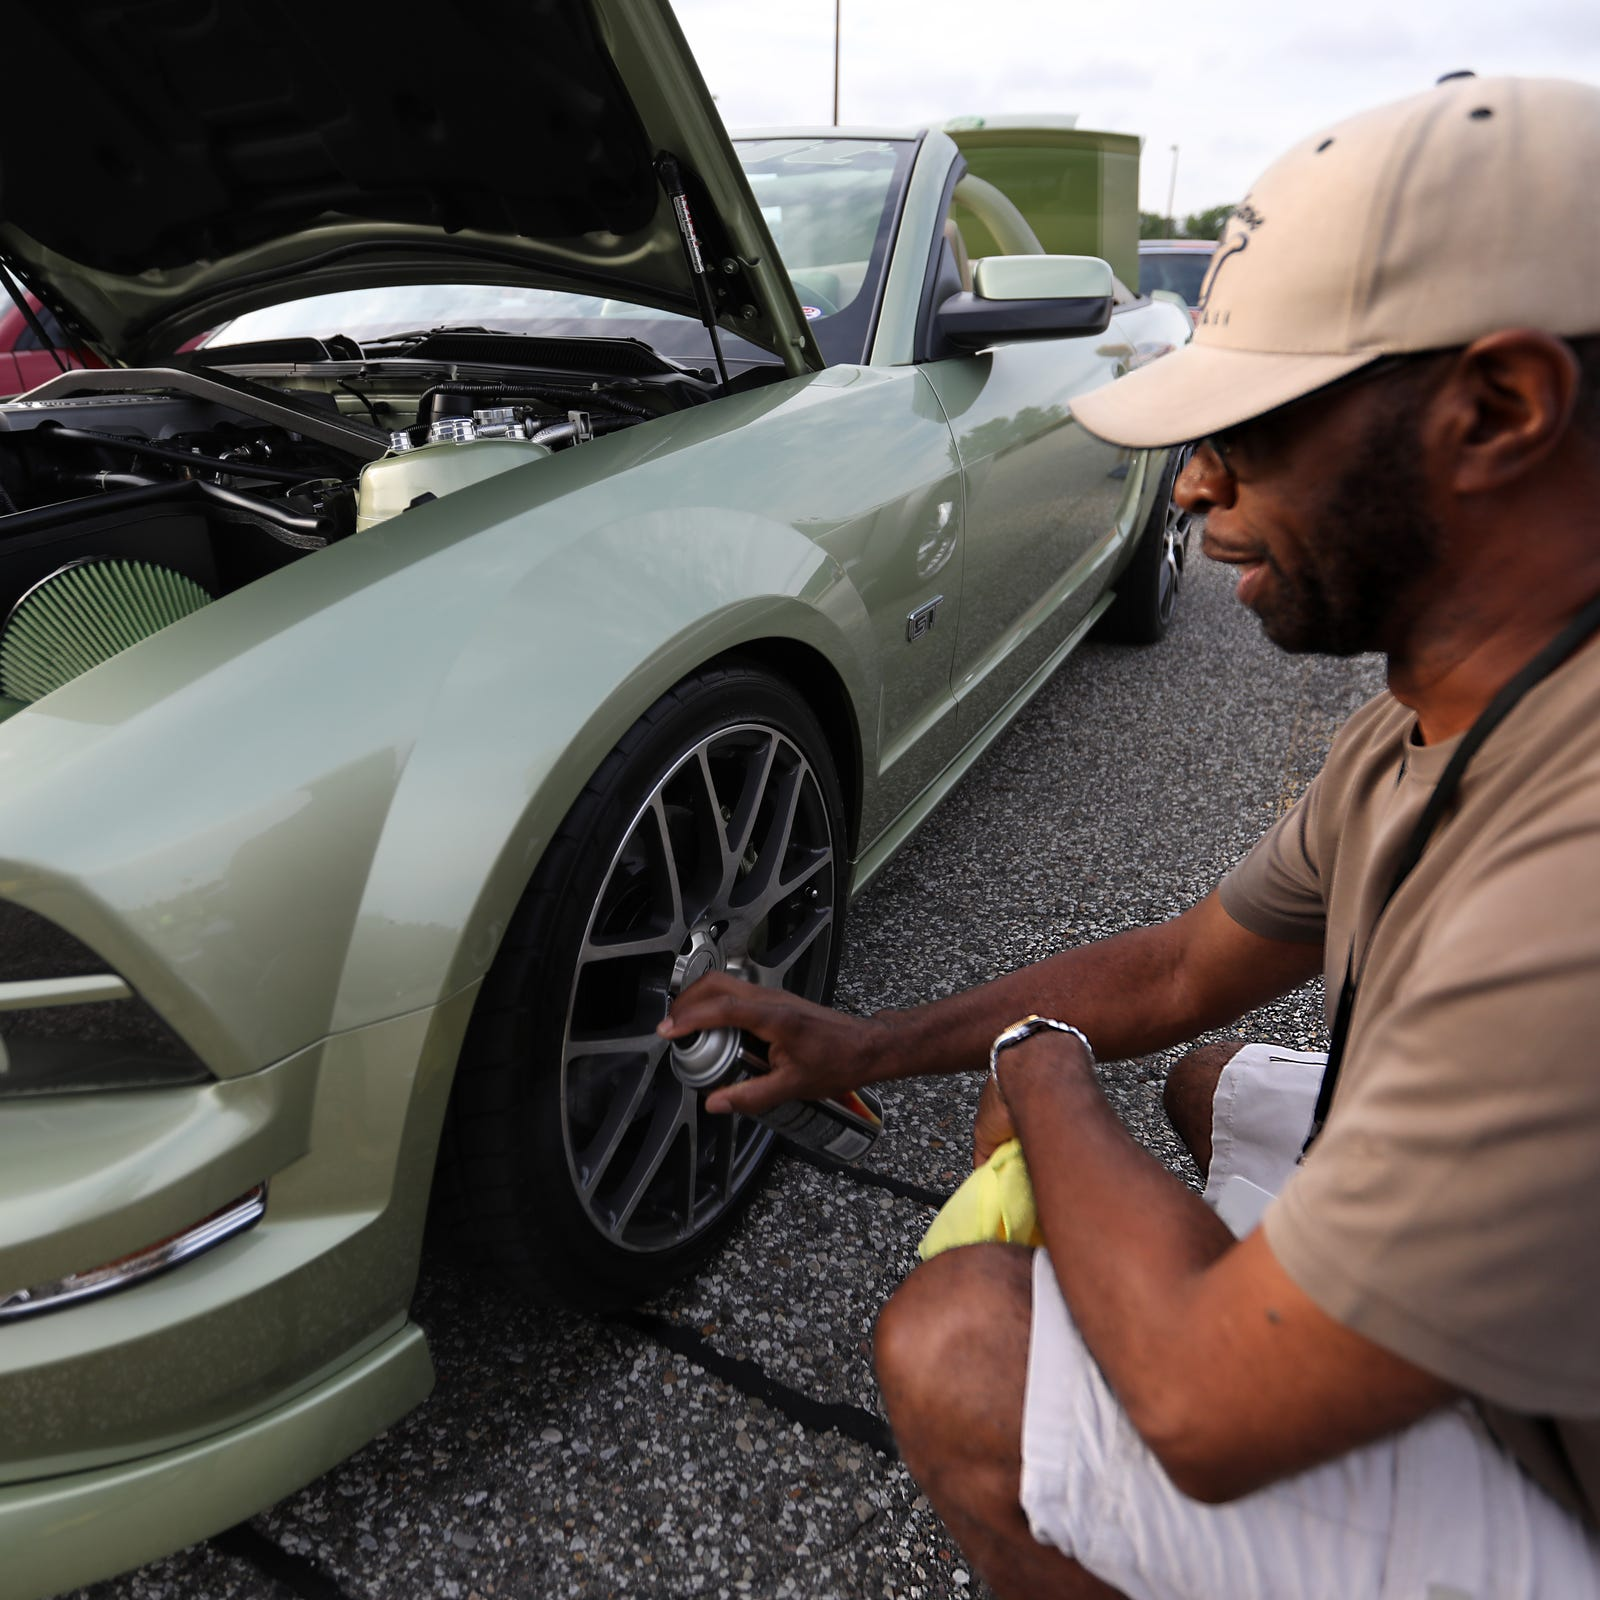 Ford Mustang: Meet the collectors who made it unstoppable